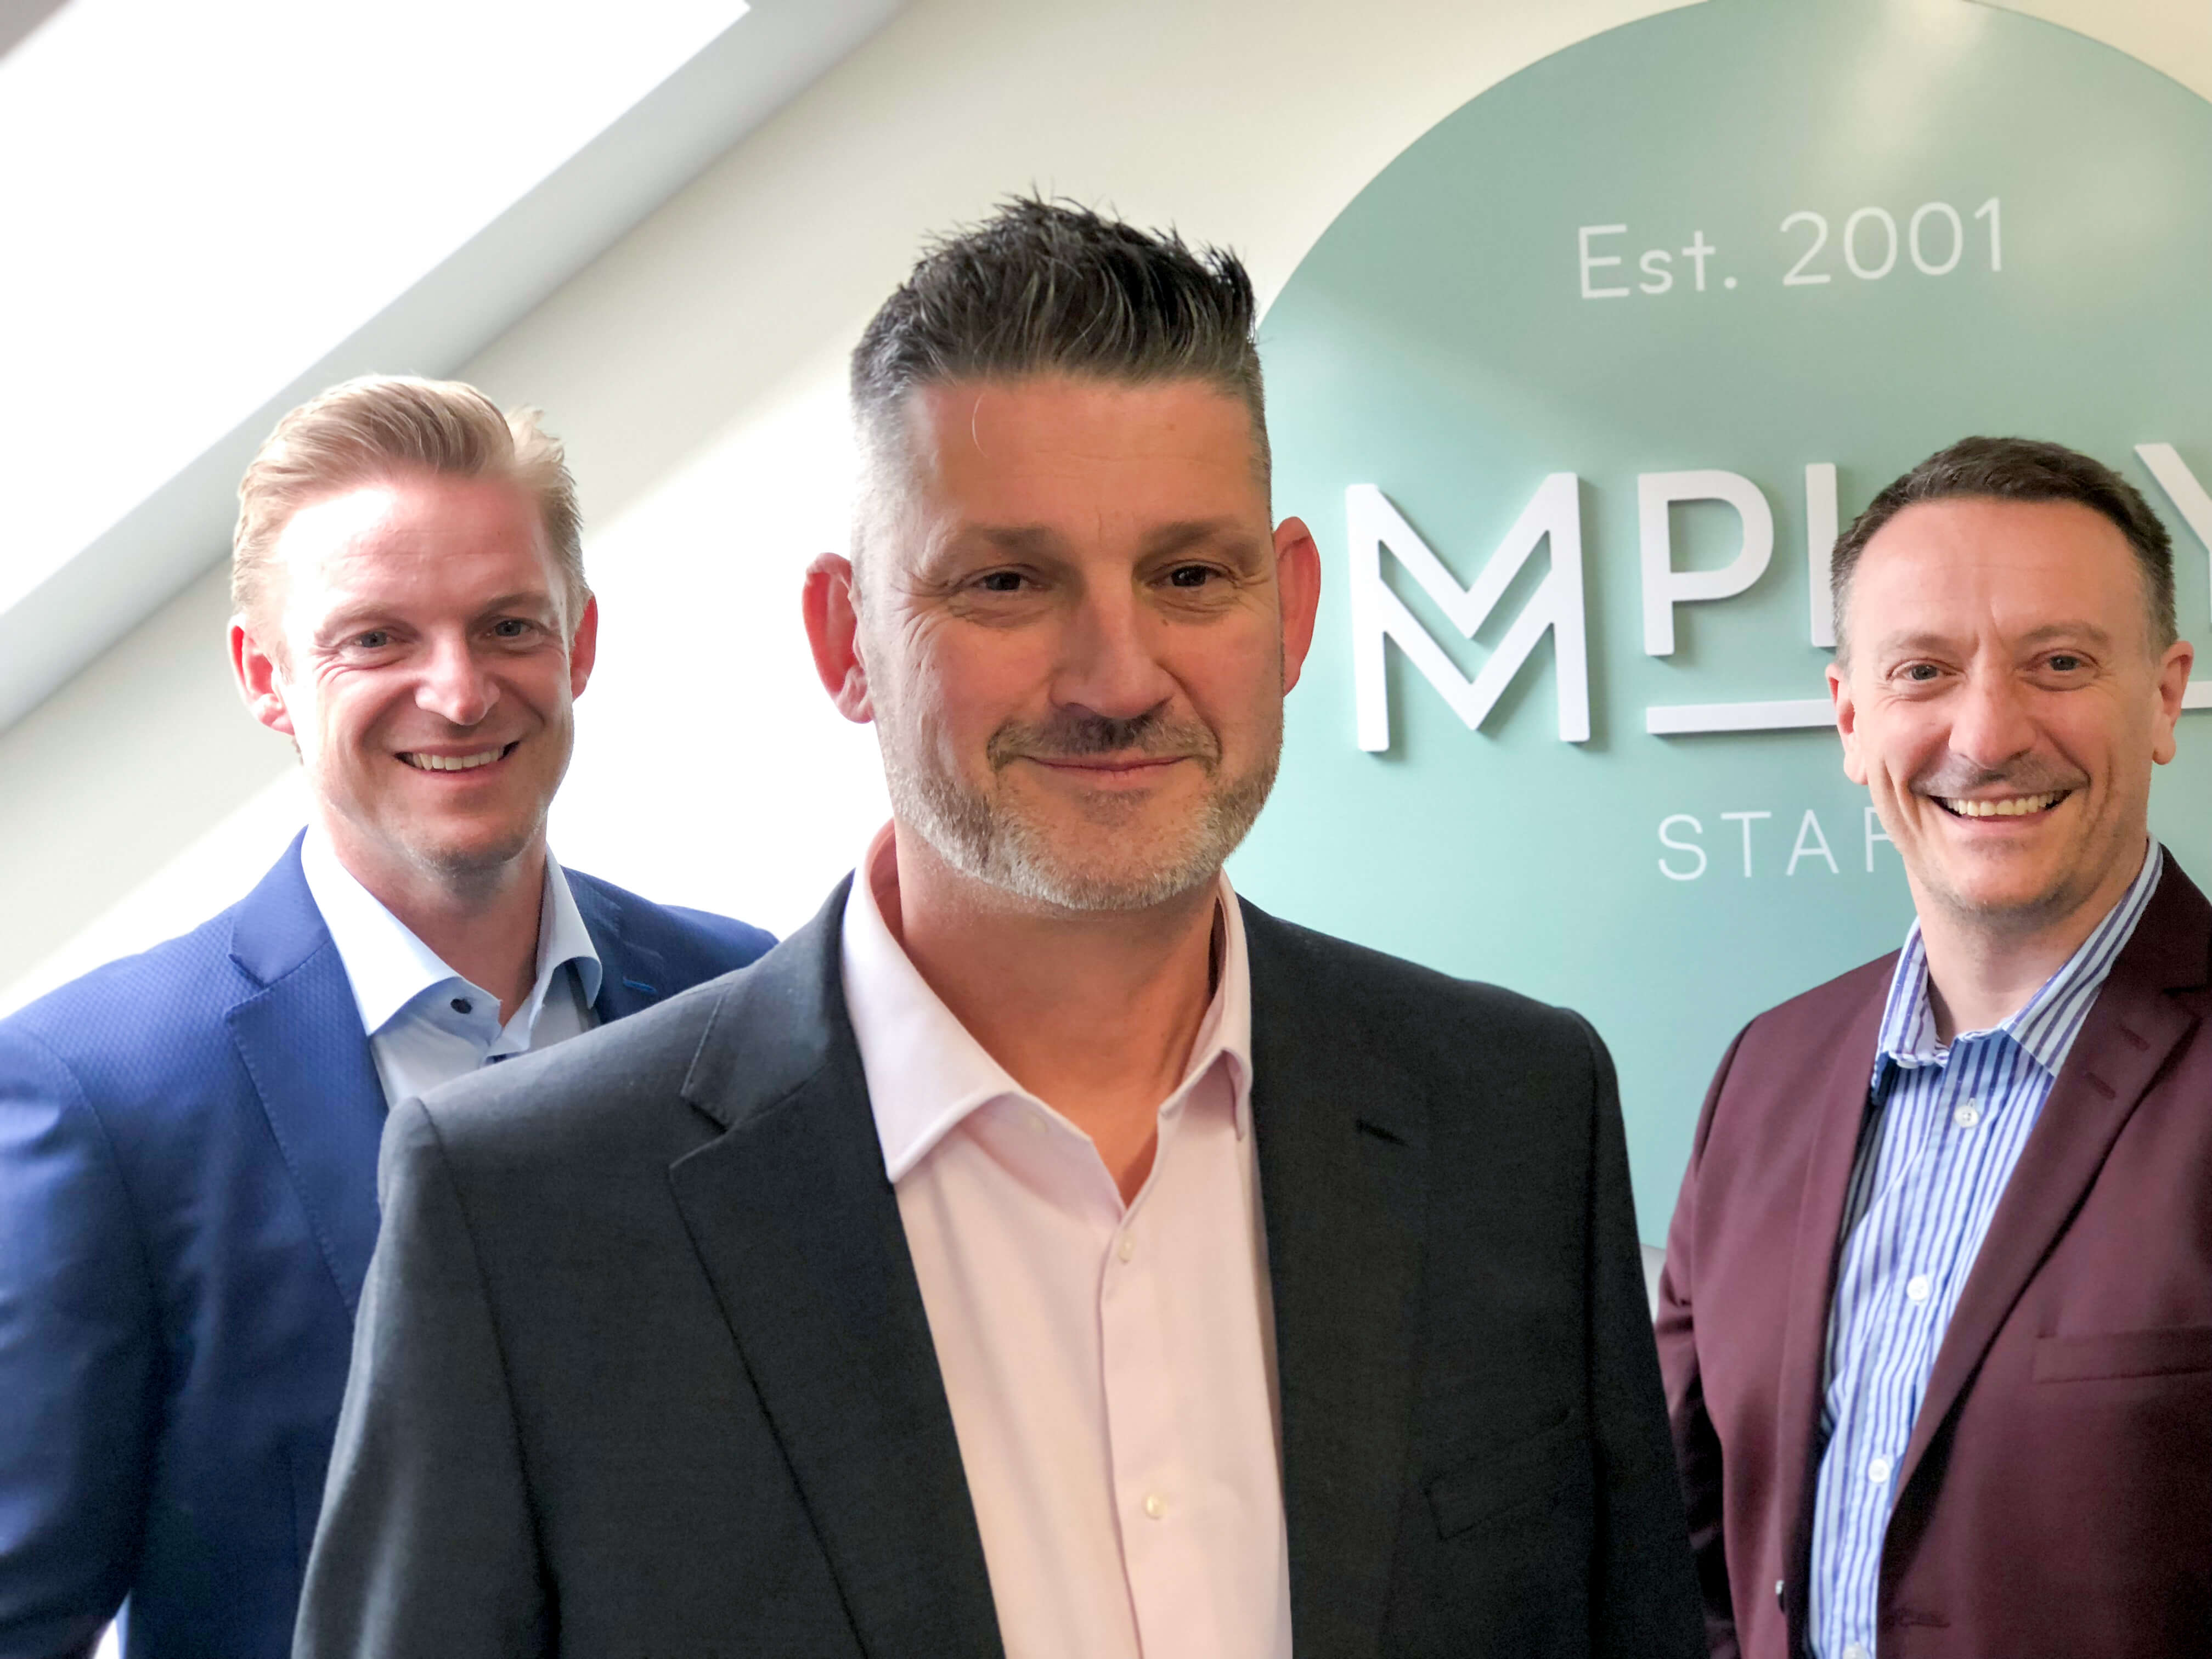 Mploy are celebrating 20 years in business!